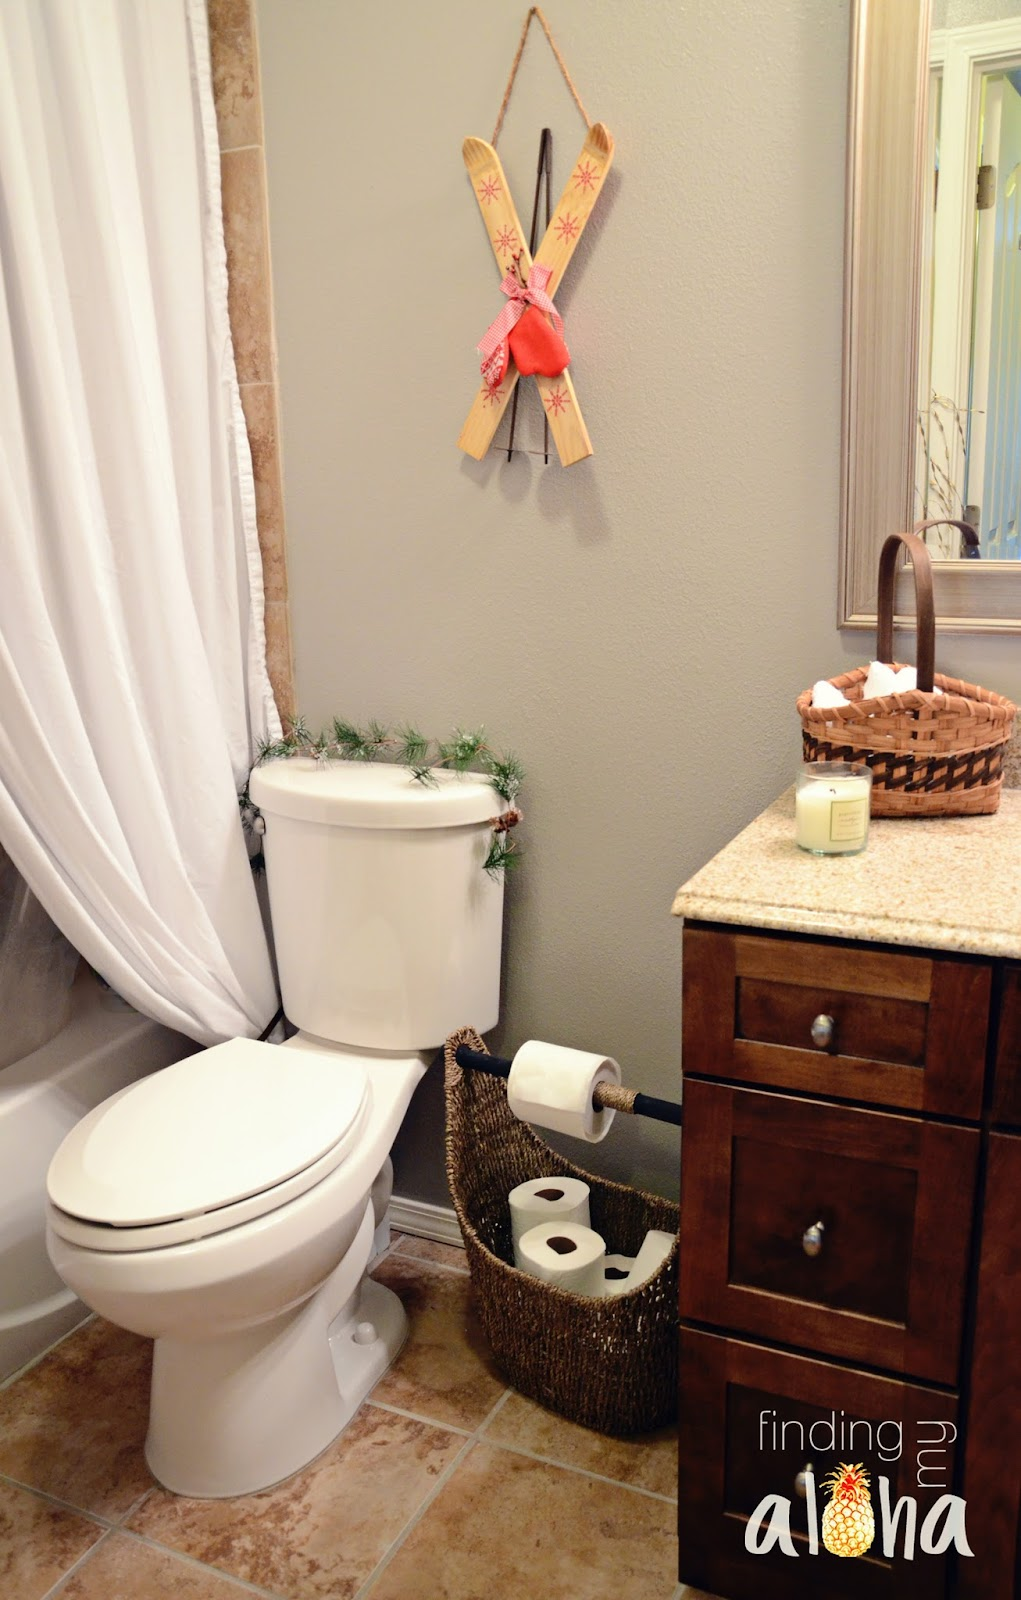 I dressed up the commode with a small piece of garland and hung up the skis on the wall above it  I added a basket of plush washcloths on the counter and. Finding My Aloha  Decorating bathrooms for Christmas   tips  amp  a tour